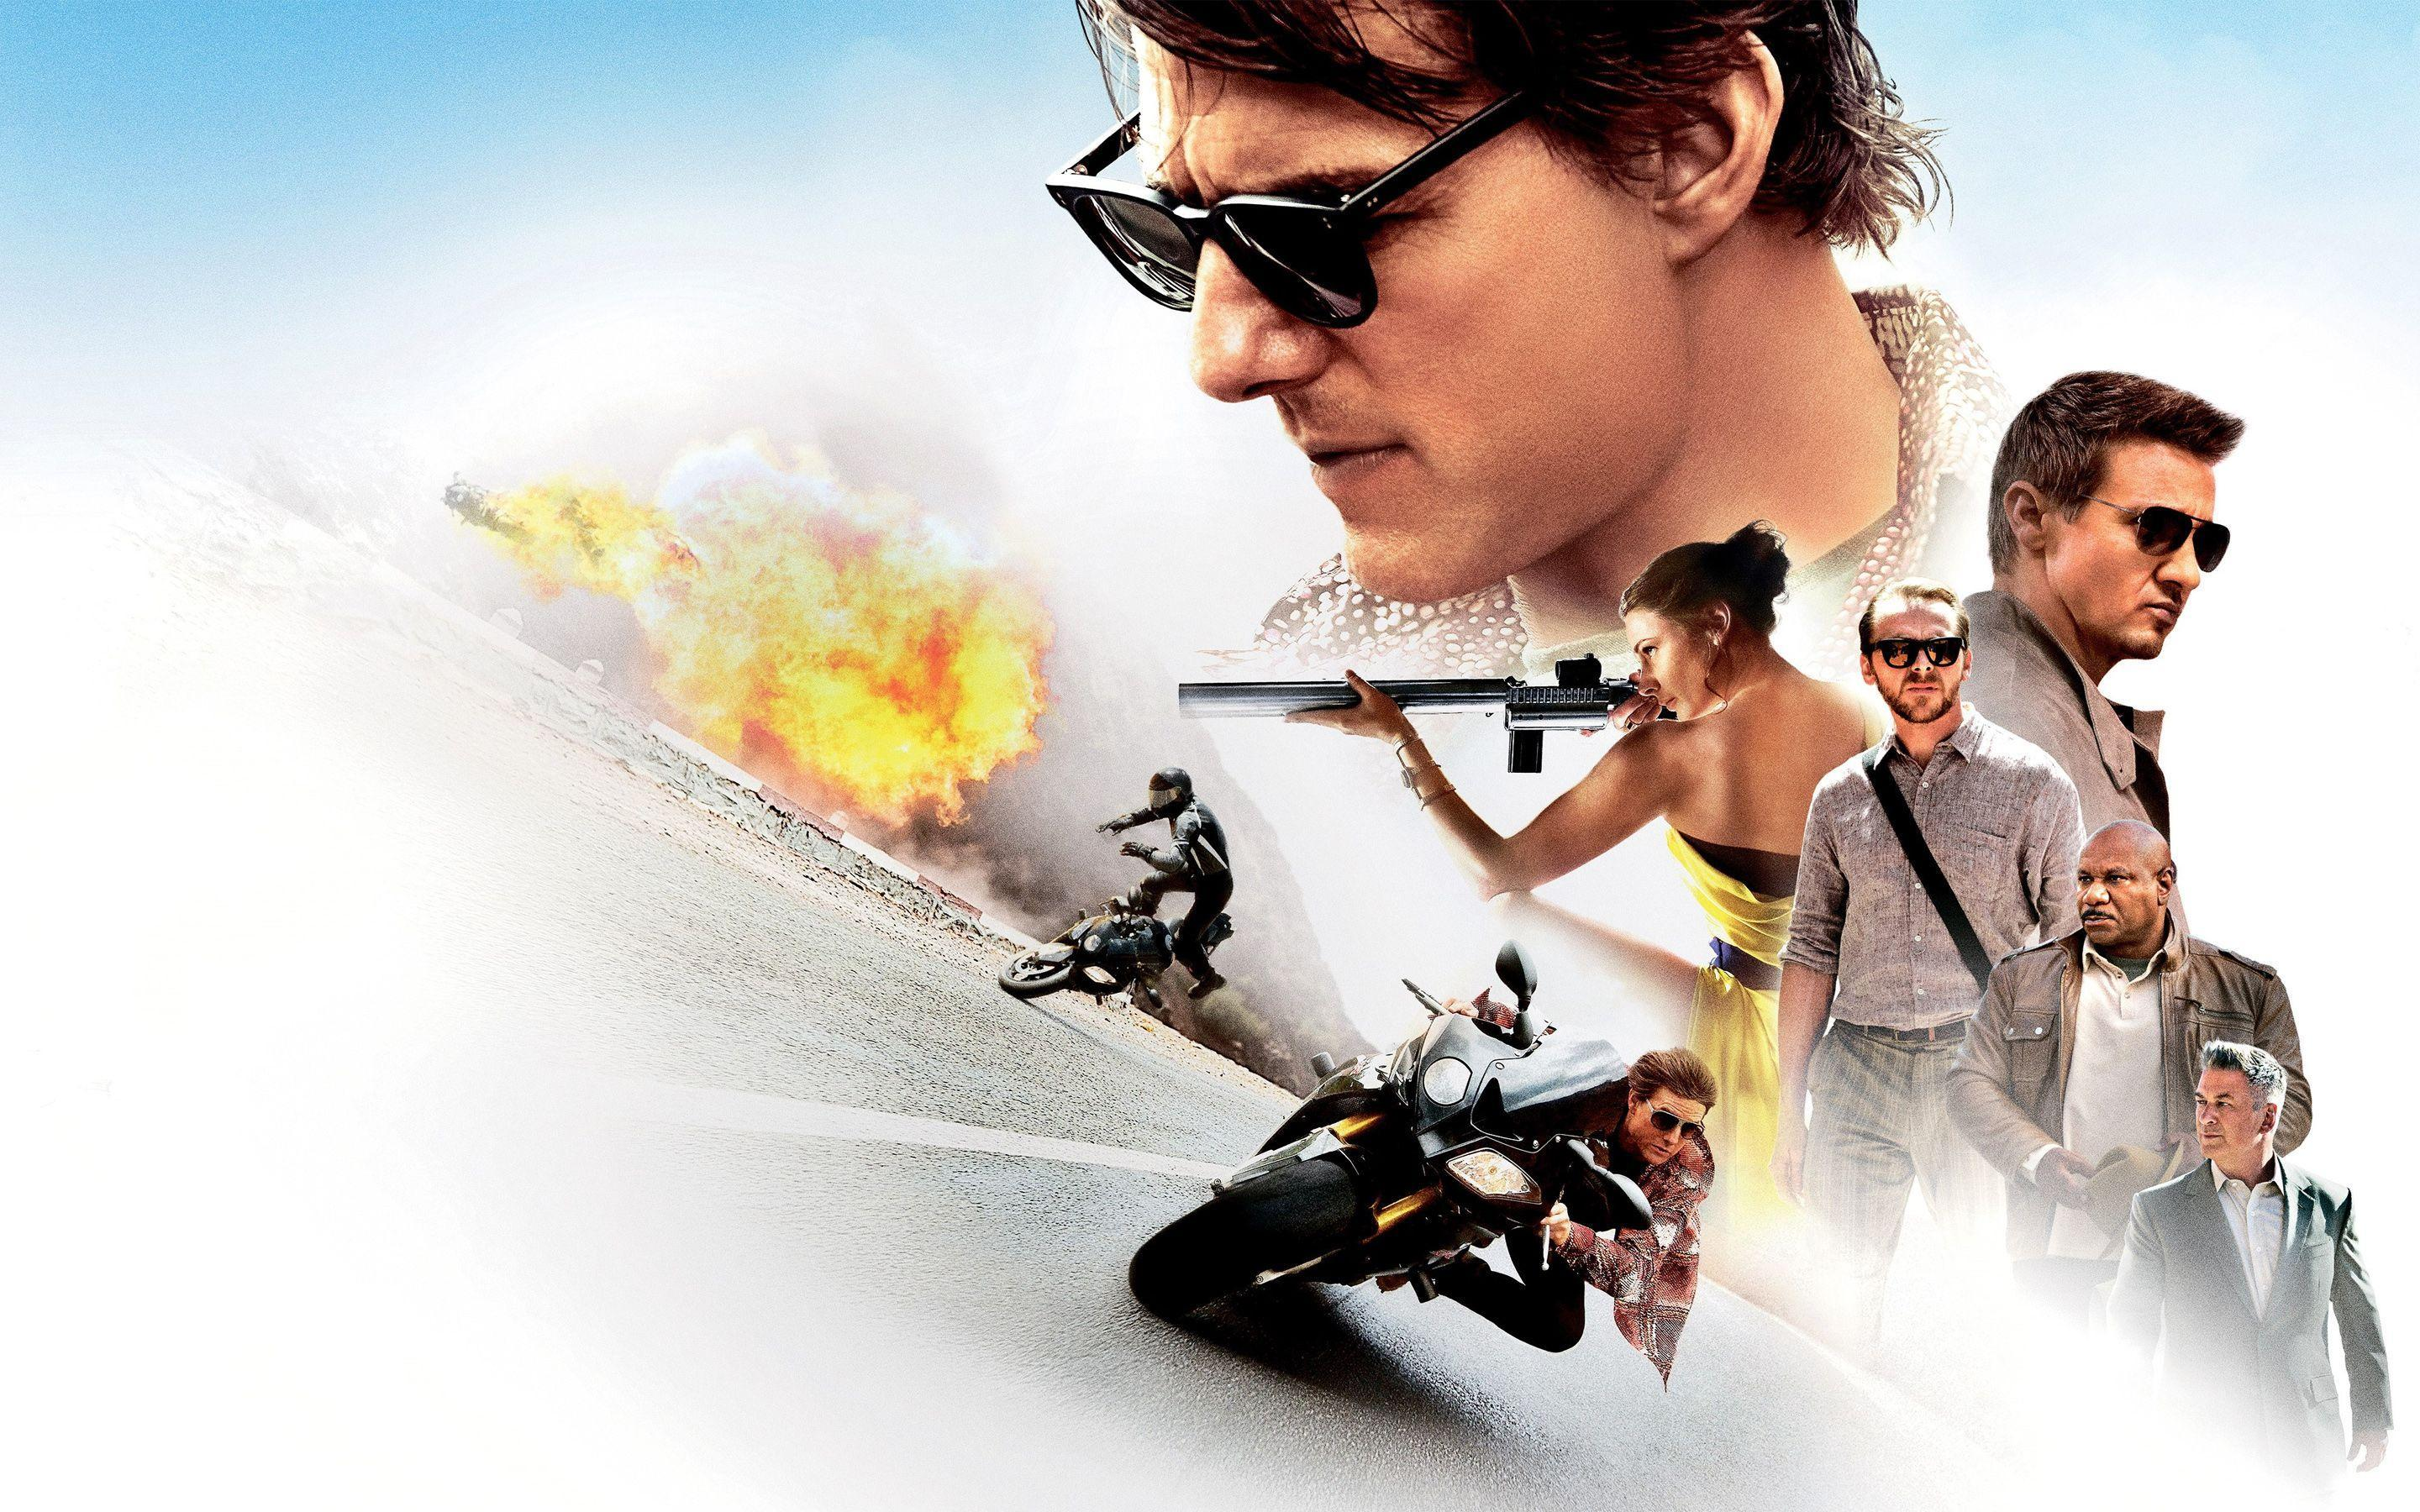 Mission Impossible Wallpapers Top Free Mission Impossible